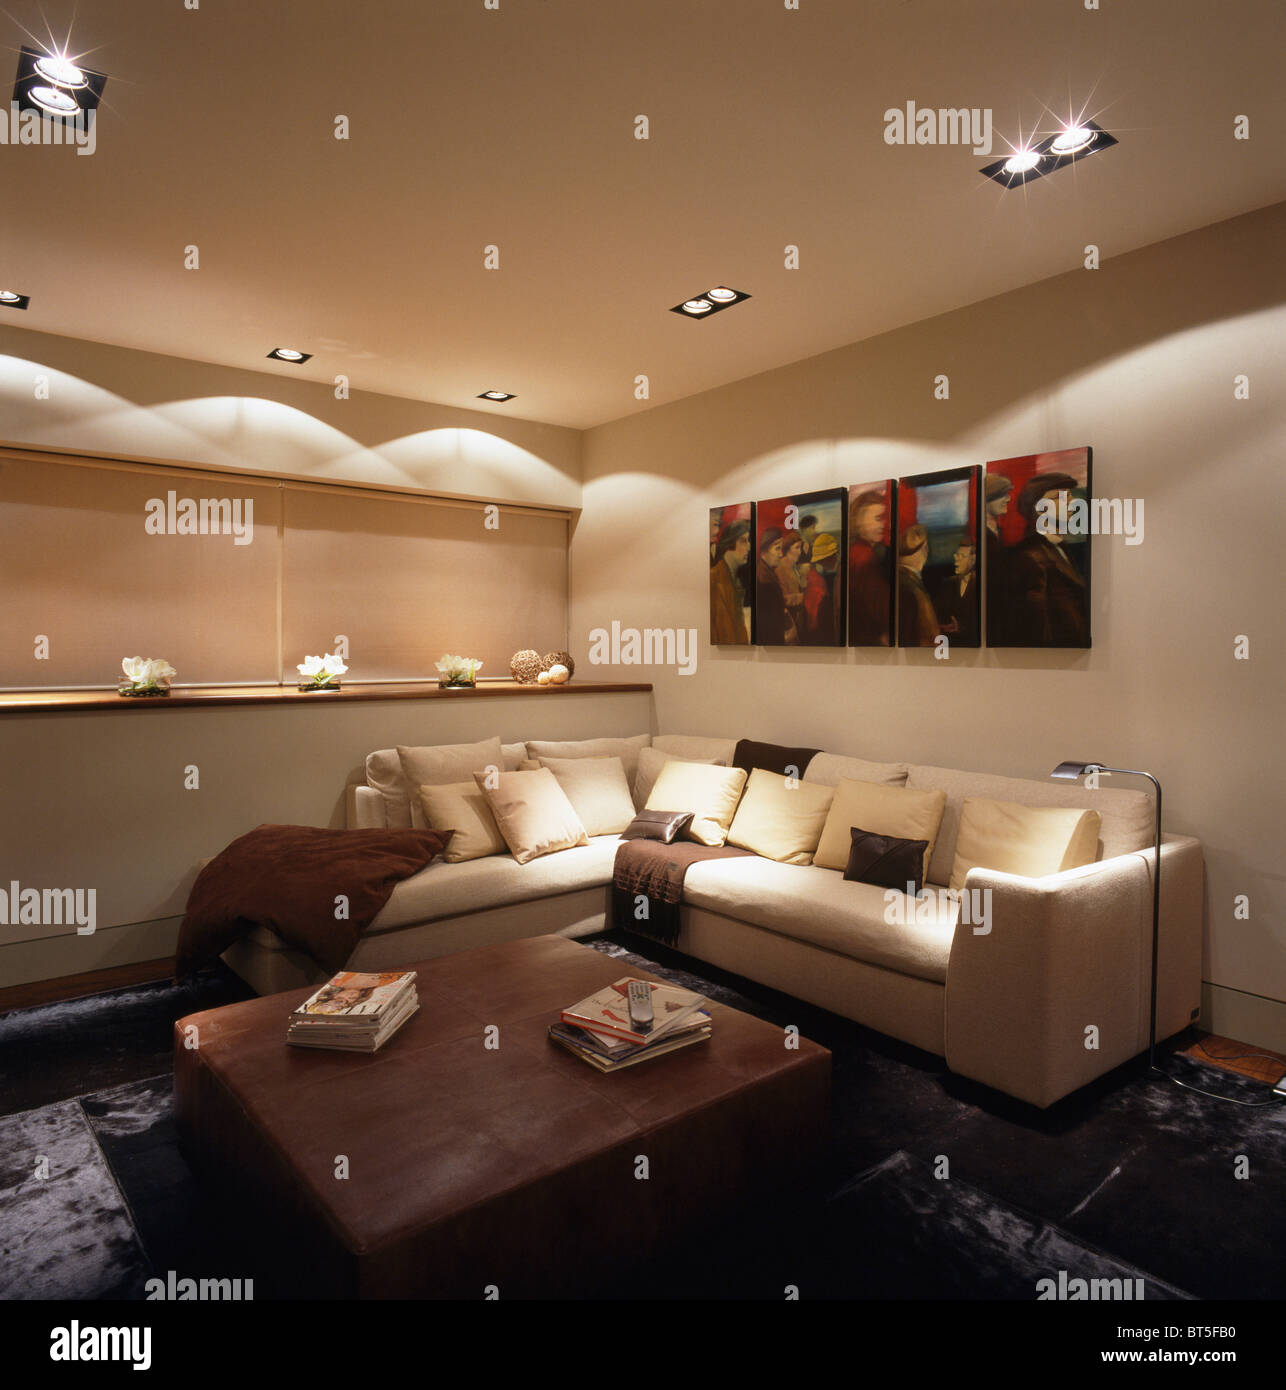 Recessed and ceiling lighting above L-shaped sofa in modern apartment townhouse living room - Stock Image